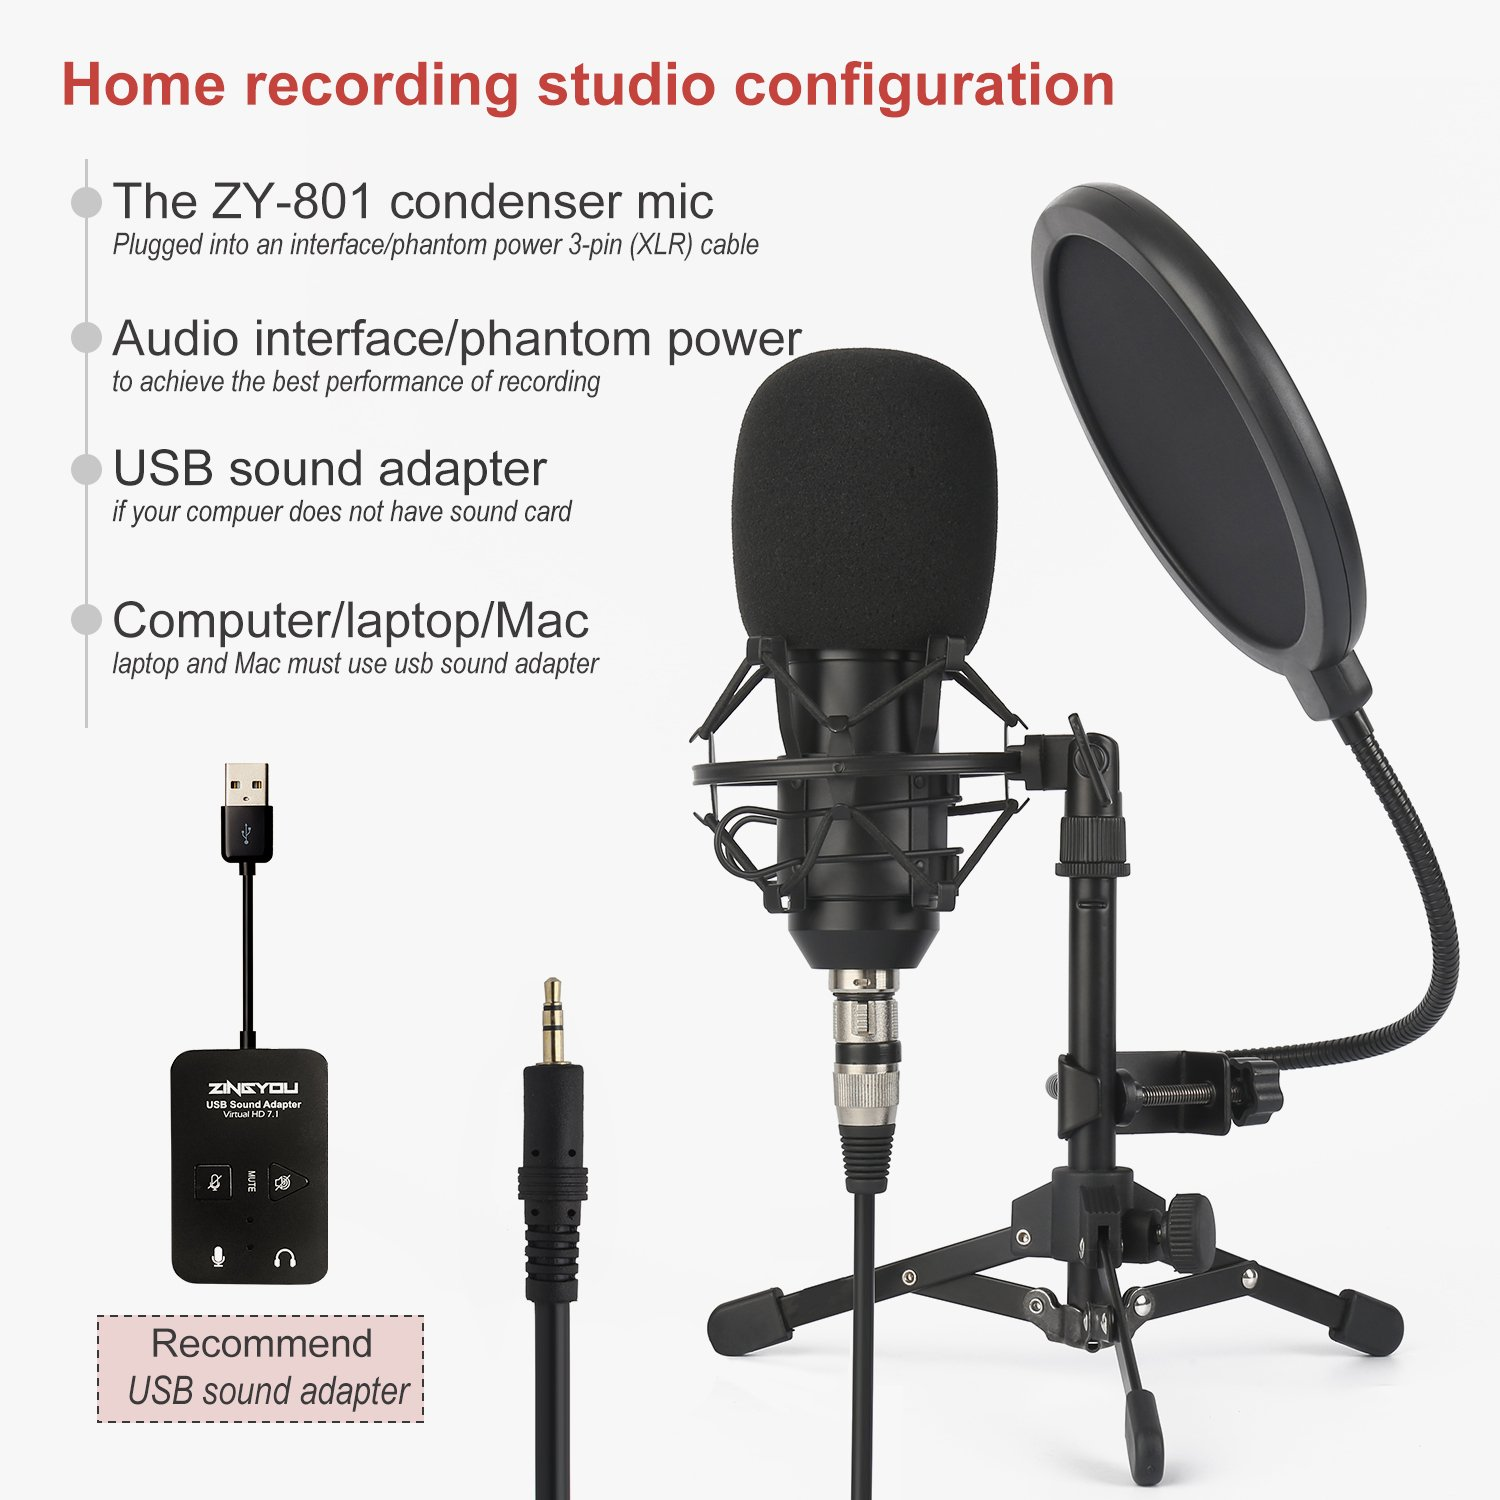 ZINGYOU ZY-801 Professional Studio Microphone, Desktop Computer Cardioid Condenser Mic with Tripod for PC Recording, Broadcasting (Black) by ZINGYOU (Image #5)